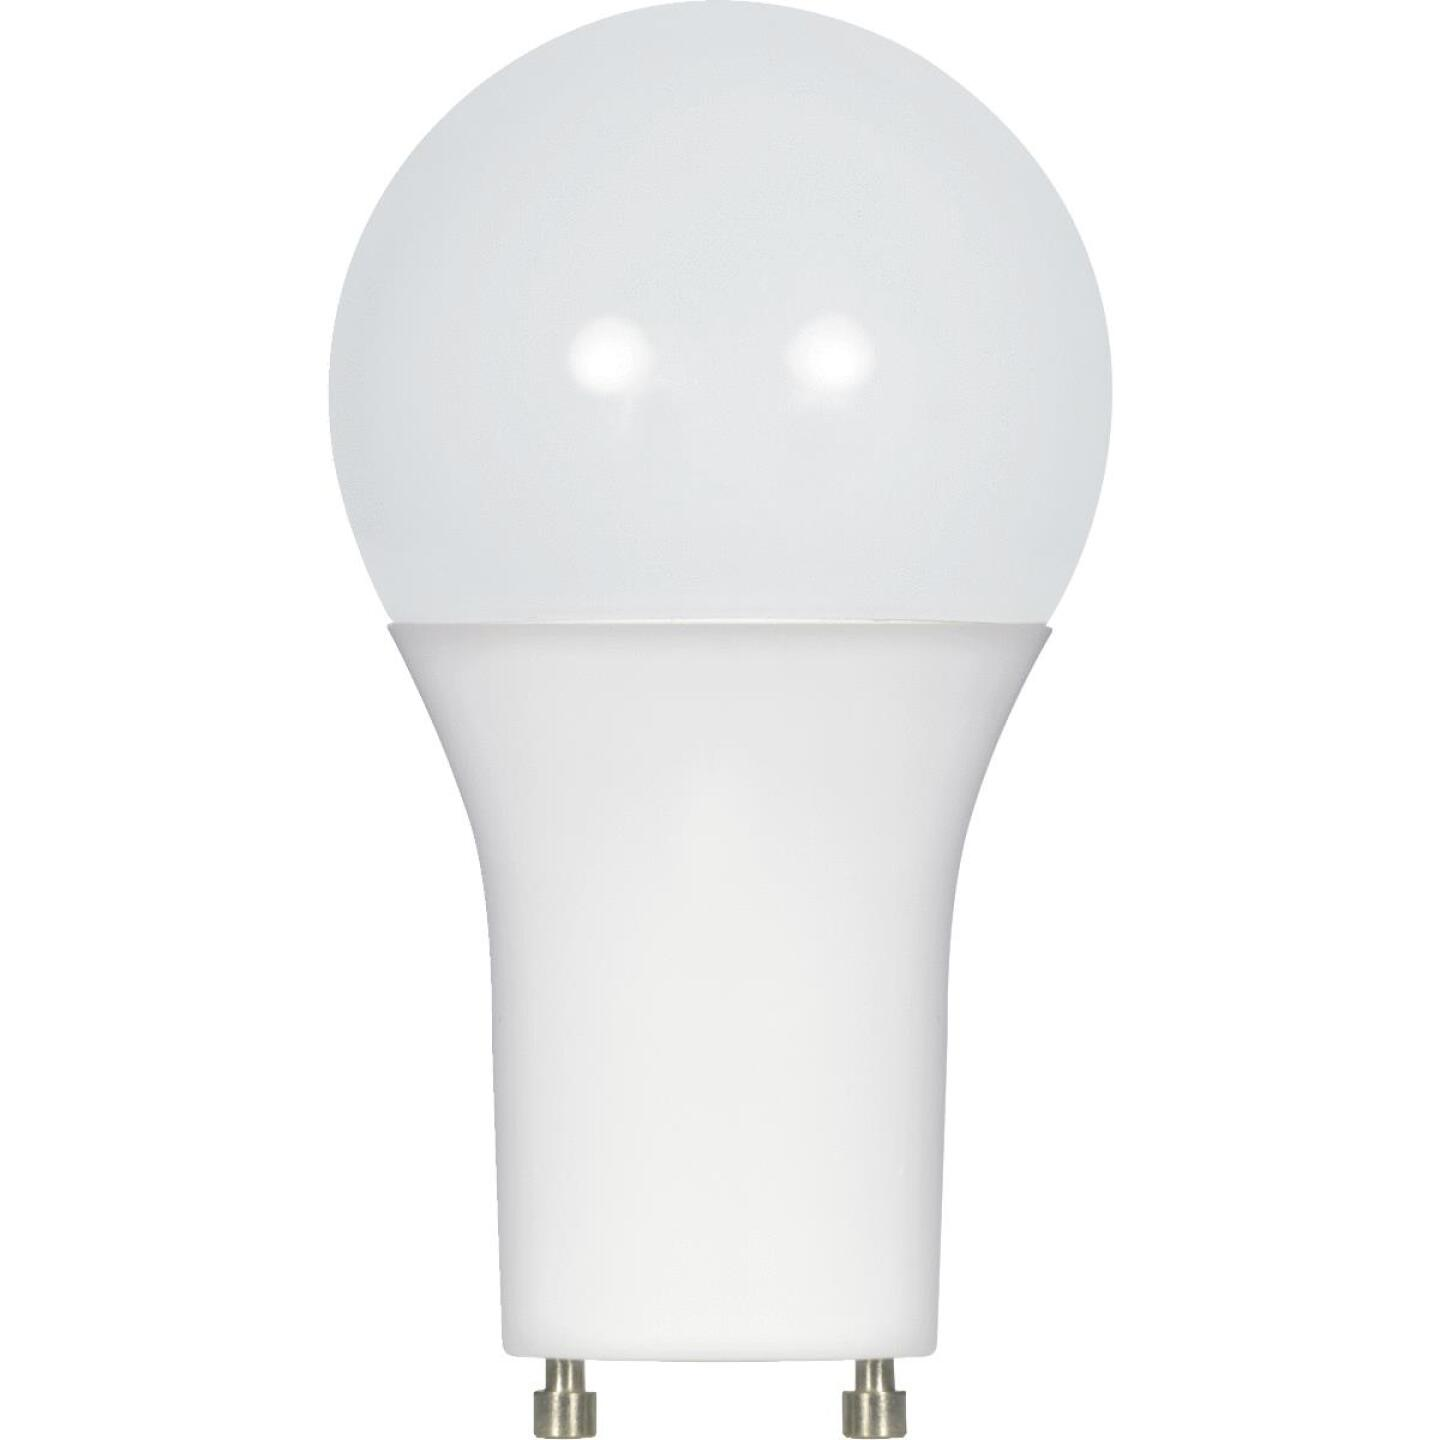 Satco 75W Equivalent Warm White A19 GU24 LED Light Bulb Image 1